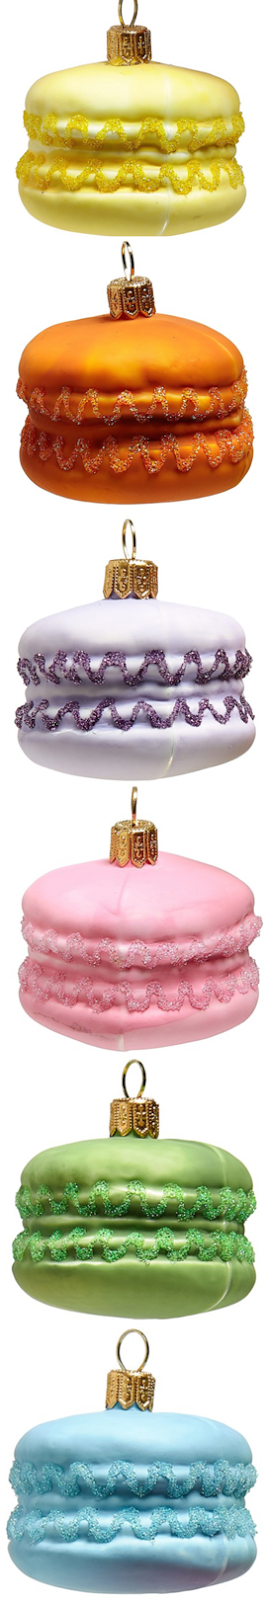 Nordstom Macaroon Ornaments (Set of 3)